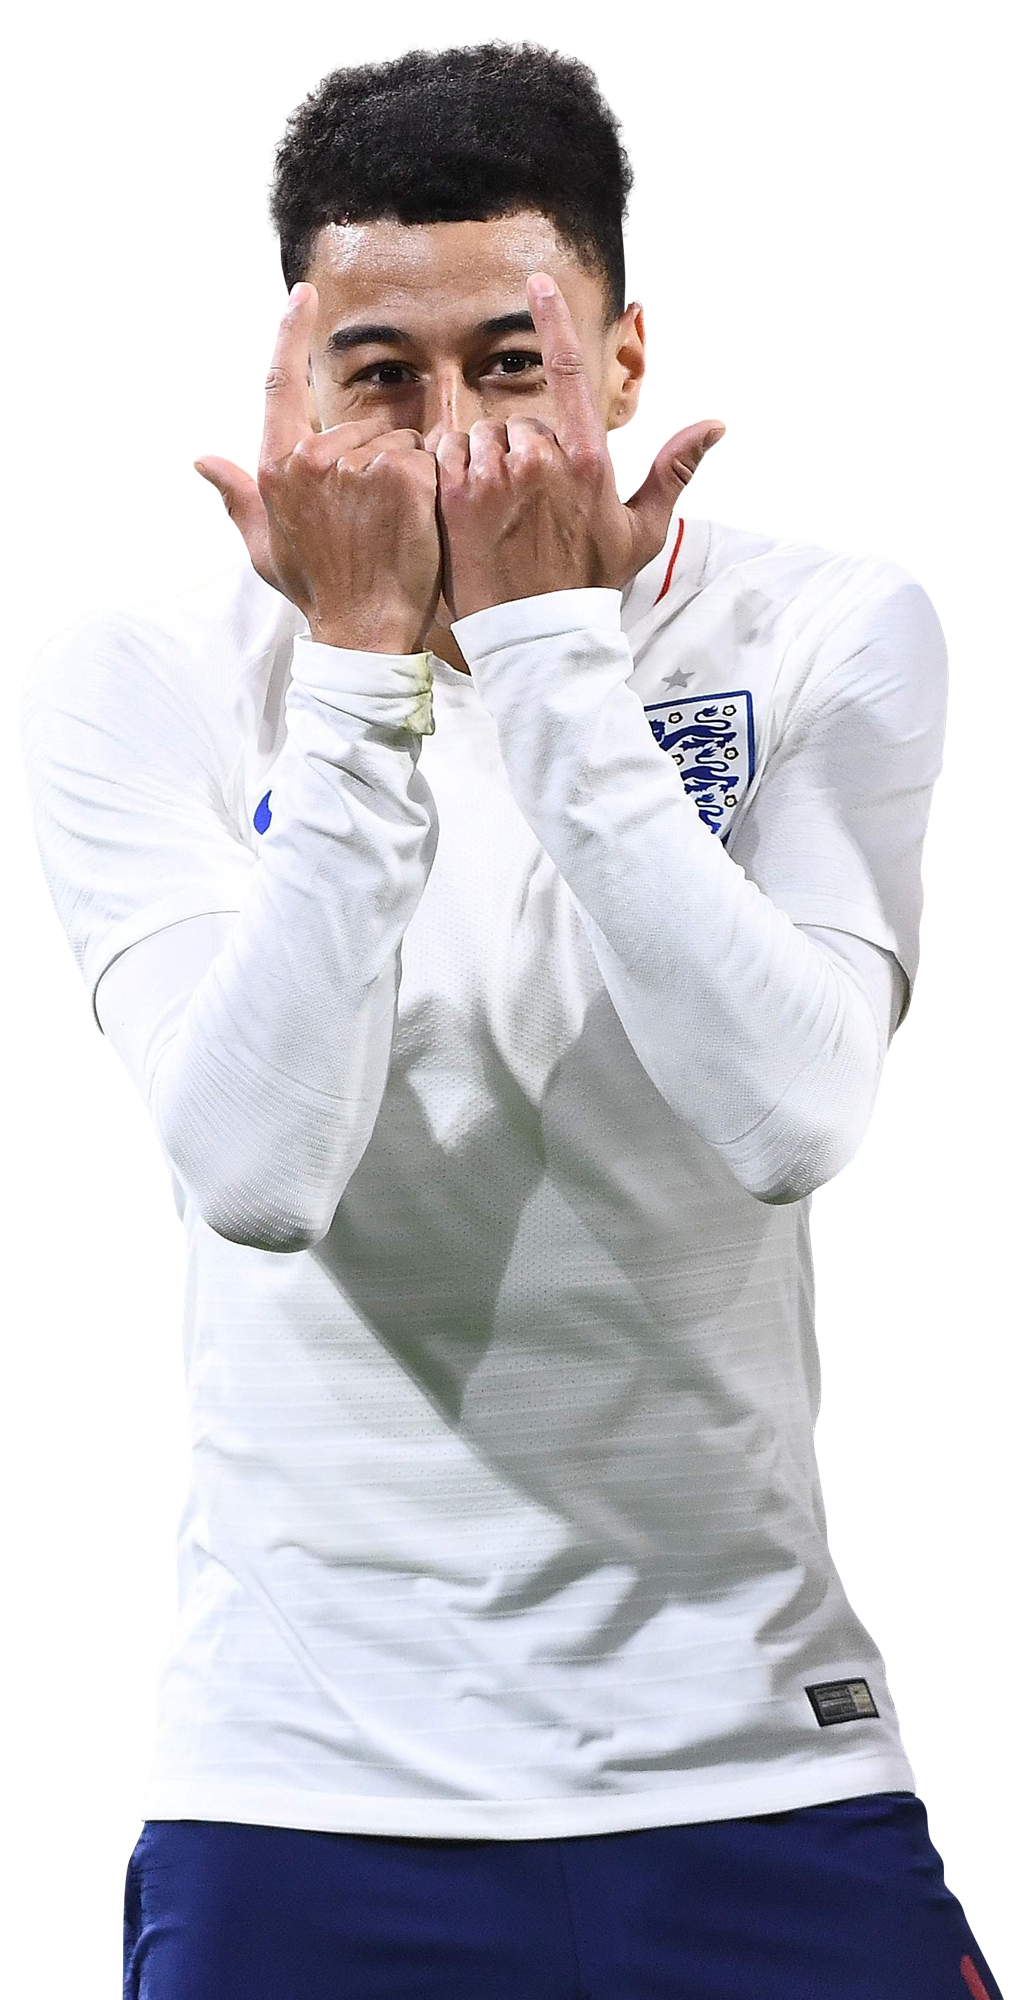 Jesse Lingard Render England View And Download Football Renders In Png Now For Free By England Football Team Jesse Lingard Manchester United Football Club